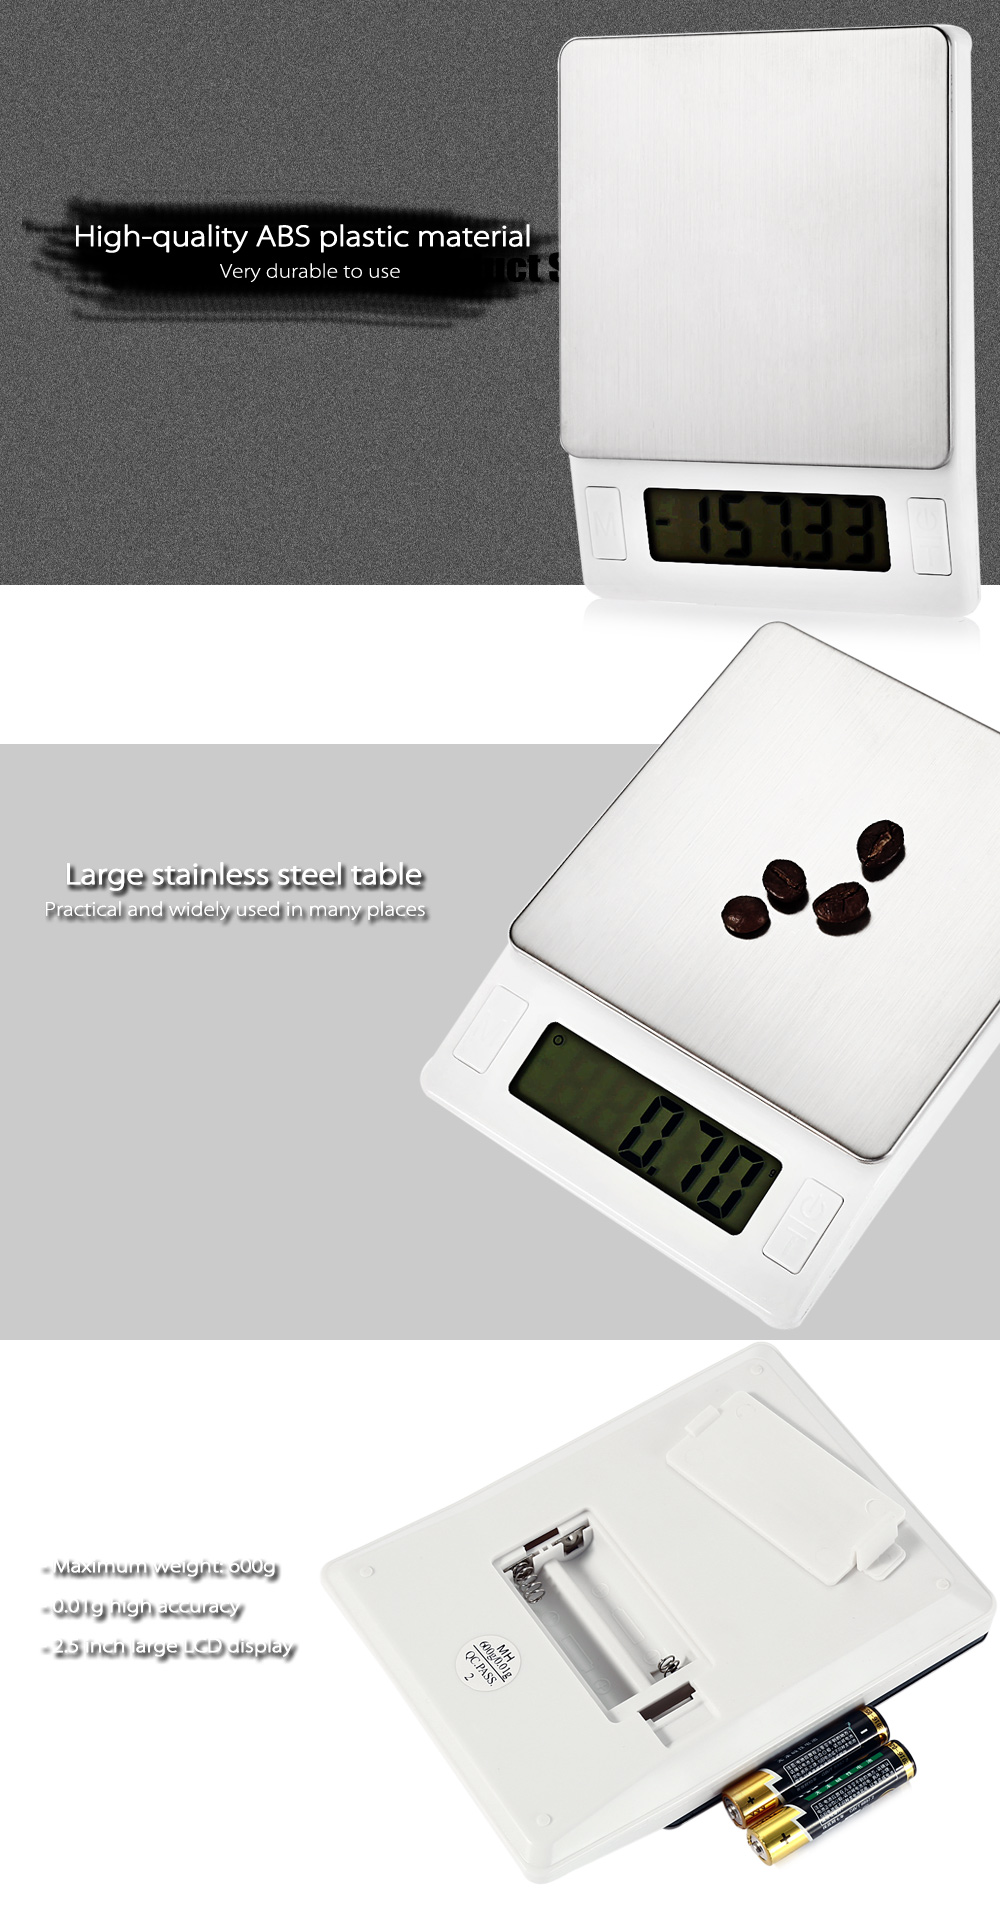 MH - 444 Precise 600g 2.5 inch LCD Screen Digital Scale